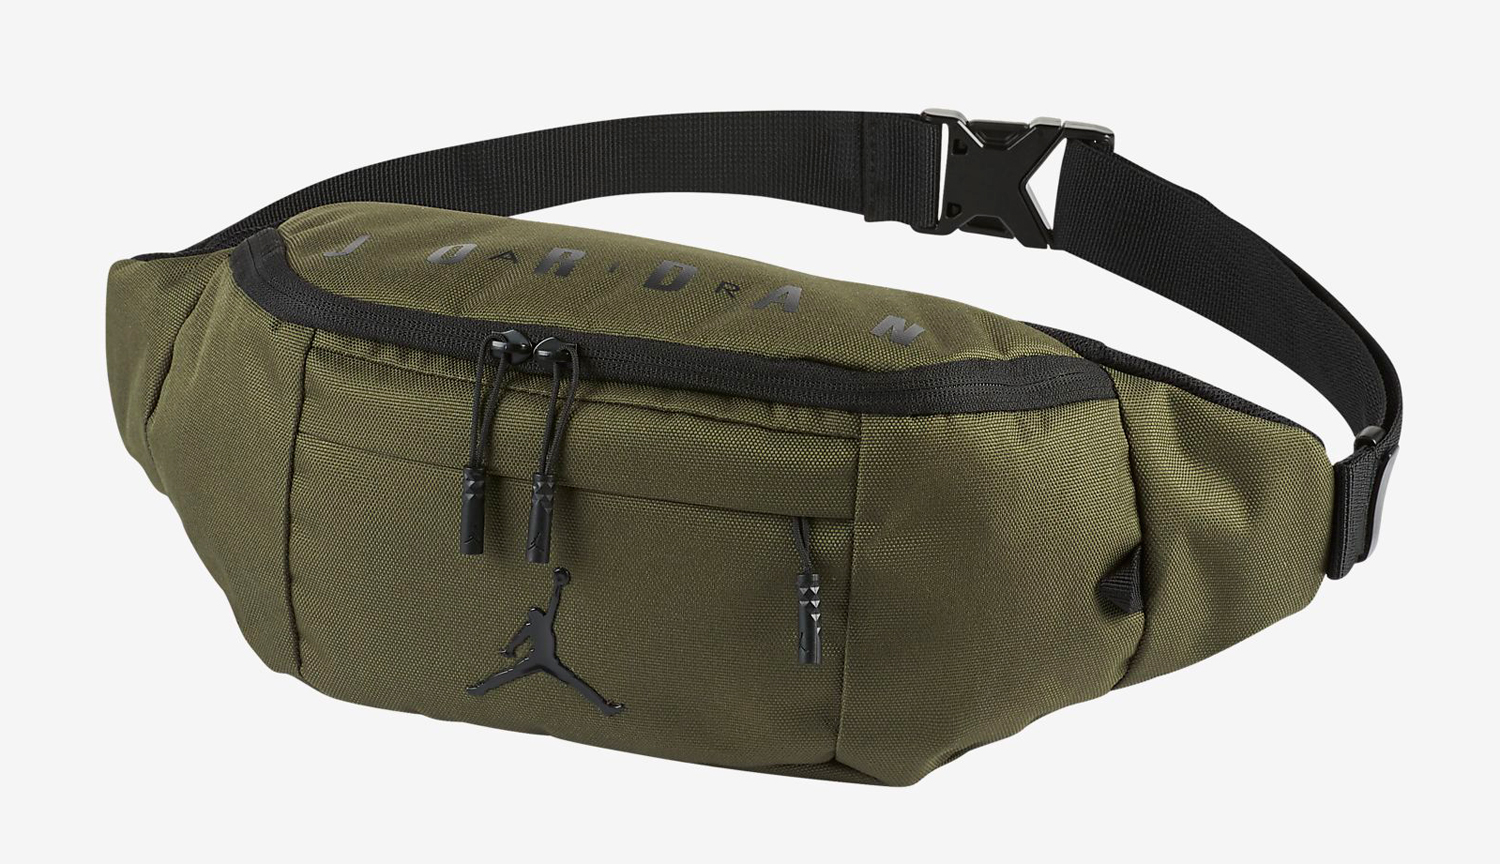 940ed868159058 Jordan 12 Chris Paul Olive Crossbody Bag